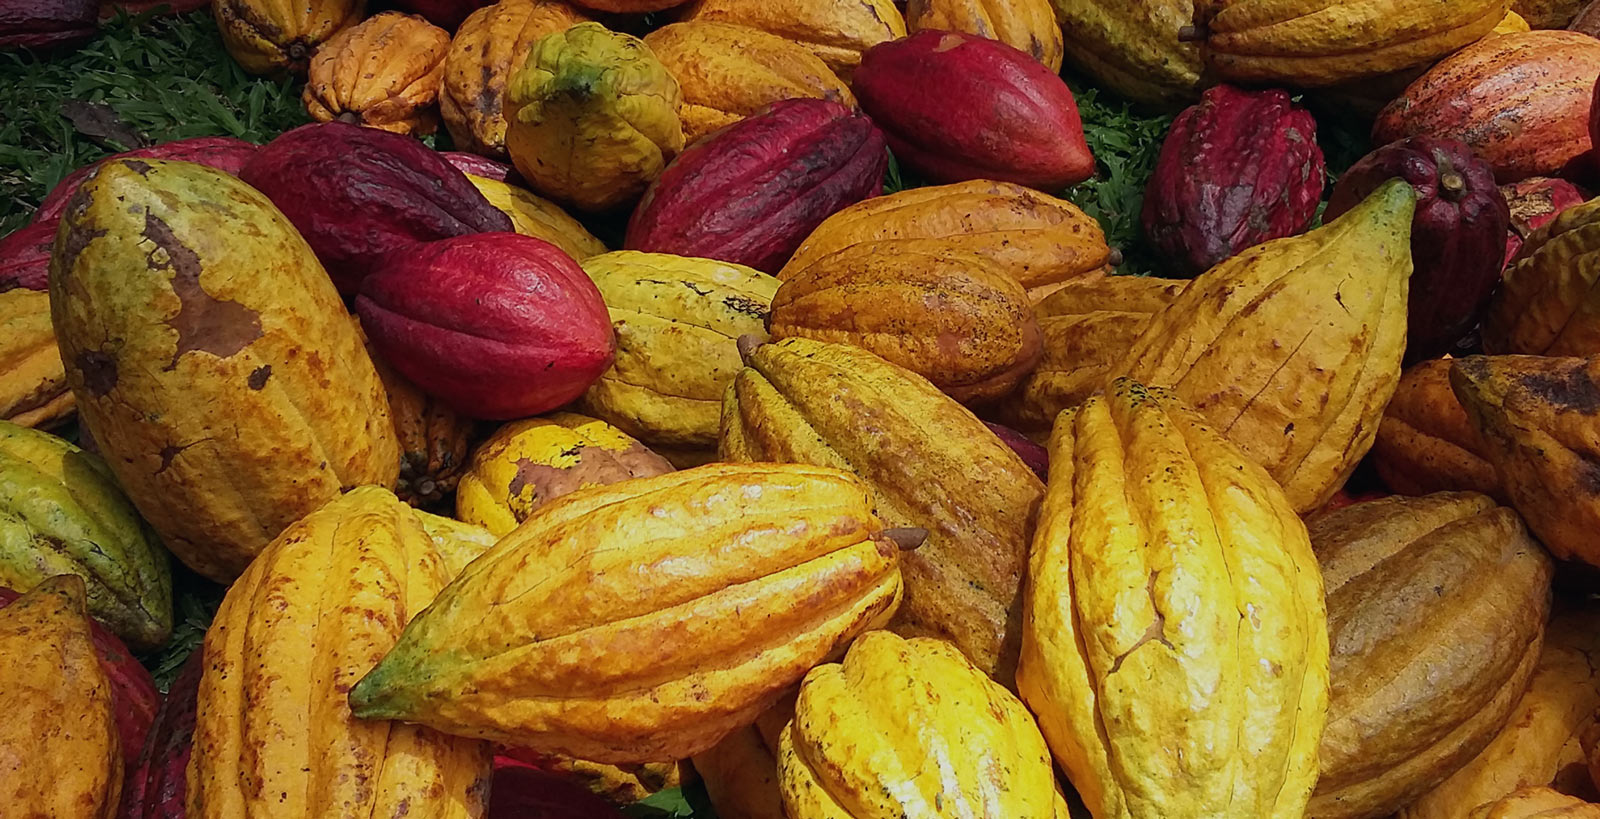 Cultivating Cacao – a Female Farmer Carries on the Family Trade, Organically!